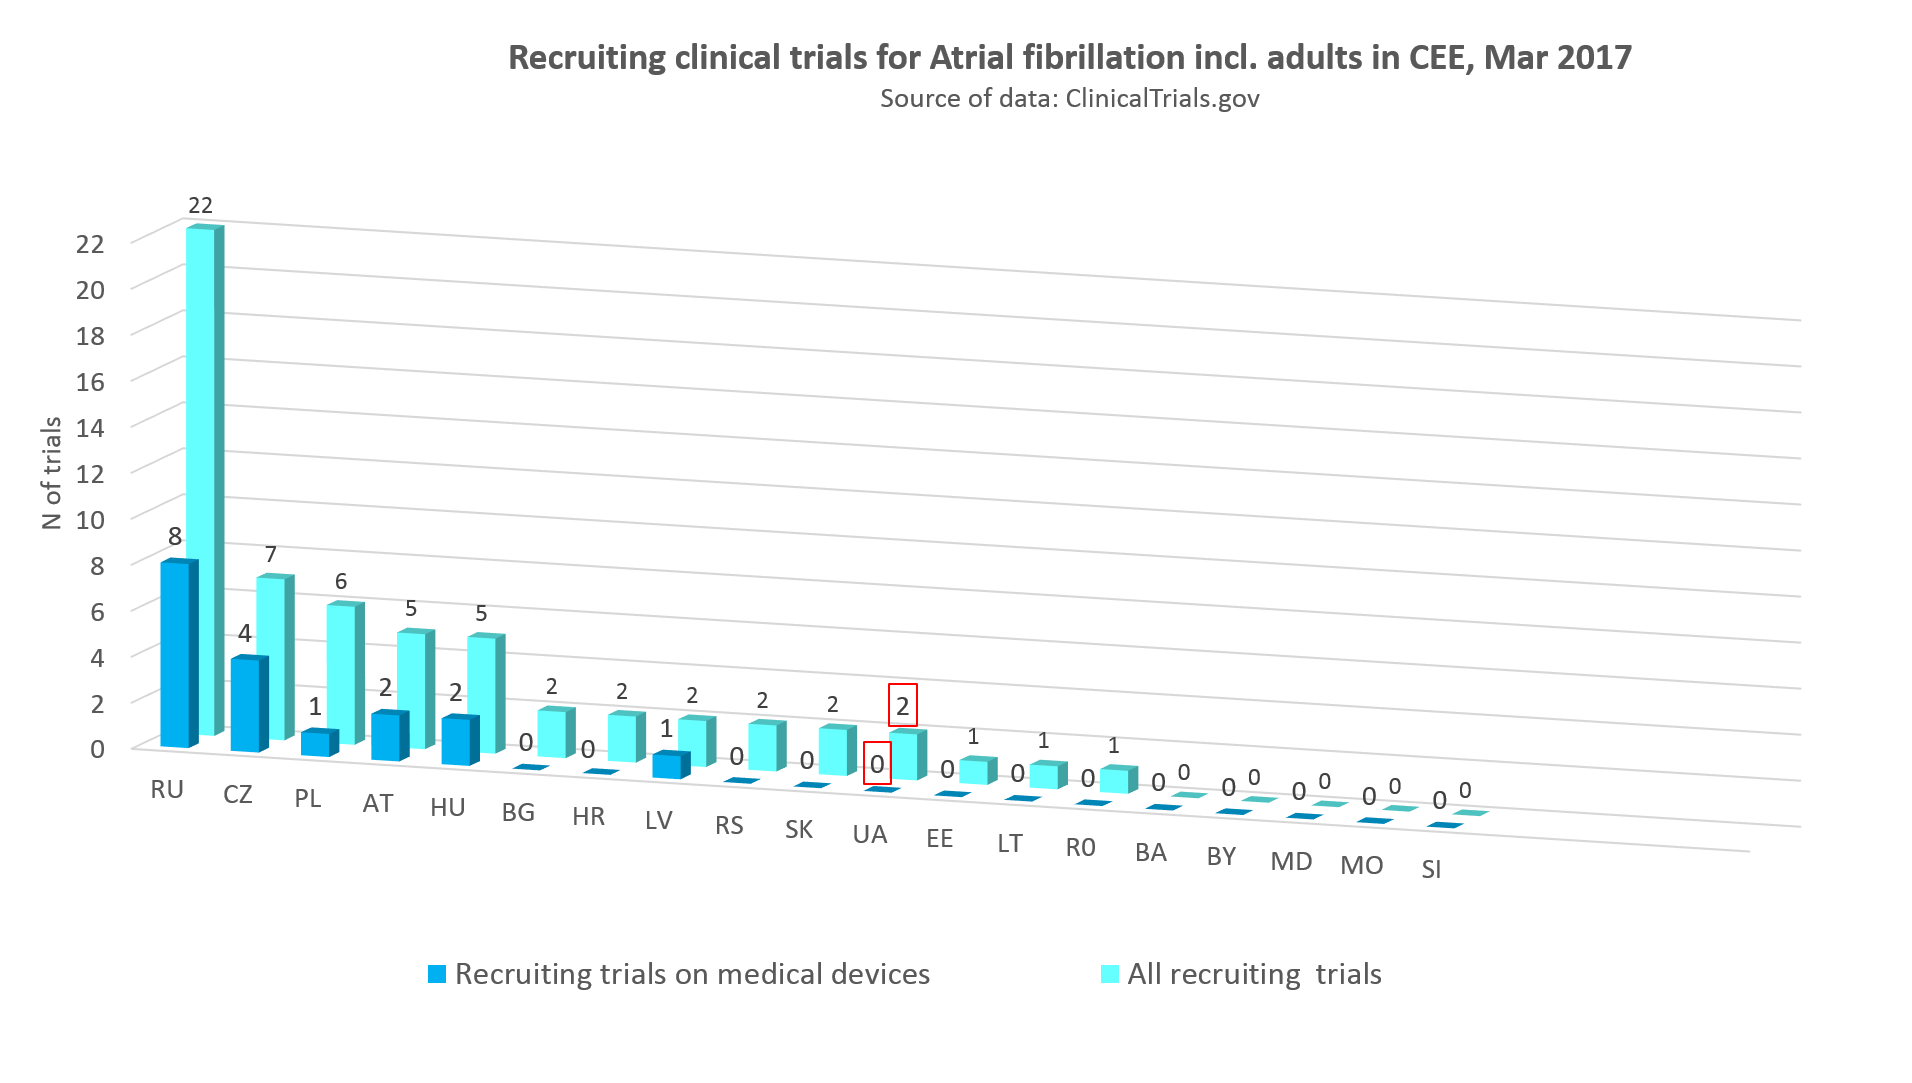 recruiting clinical trials for atrial fibrillation incl adults in CEE